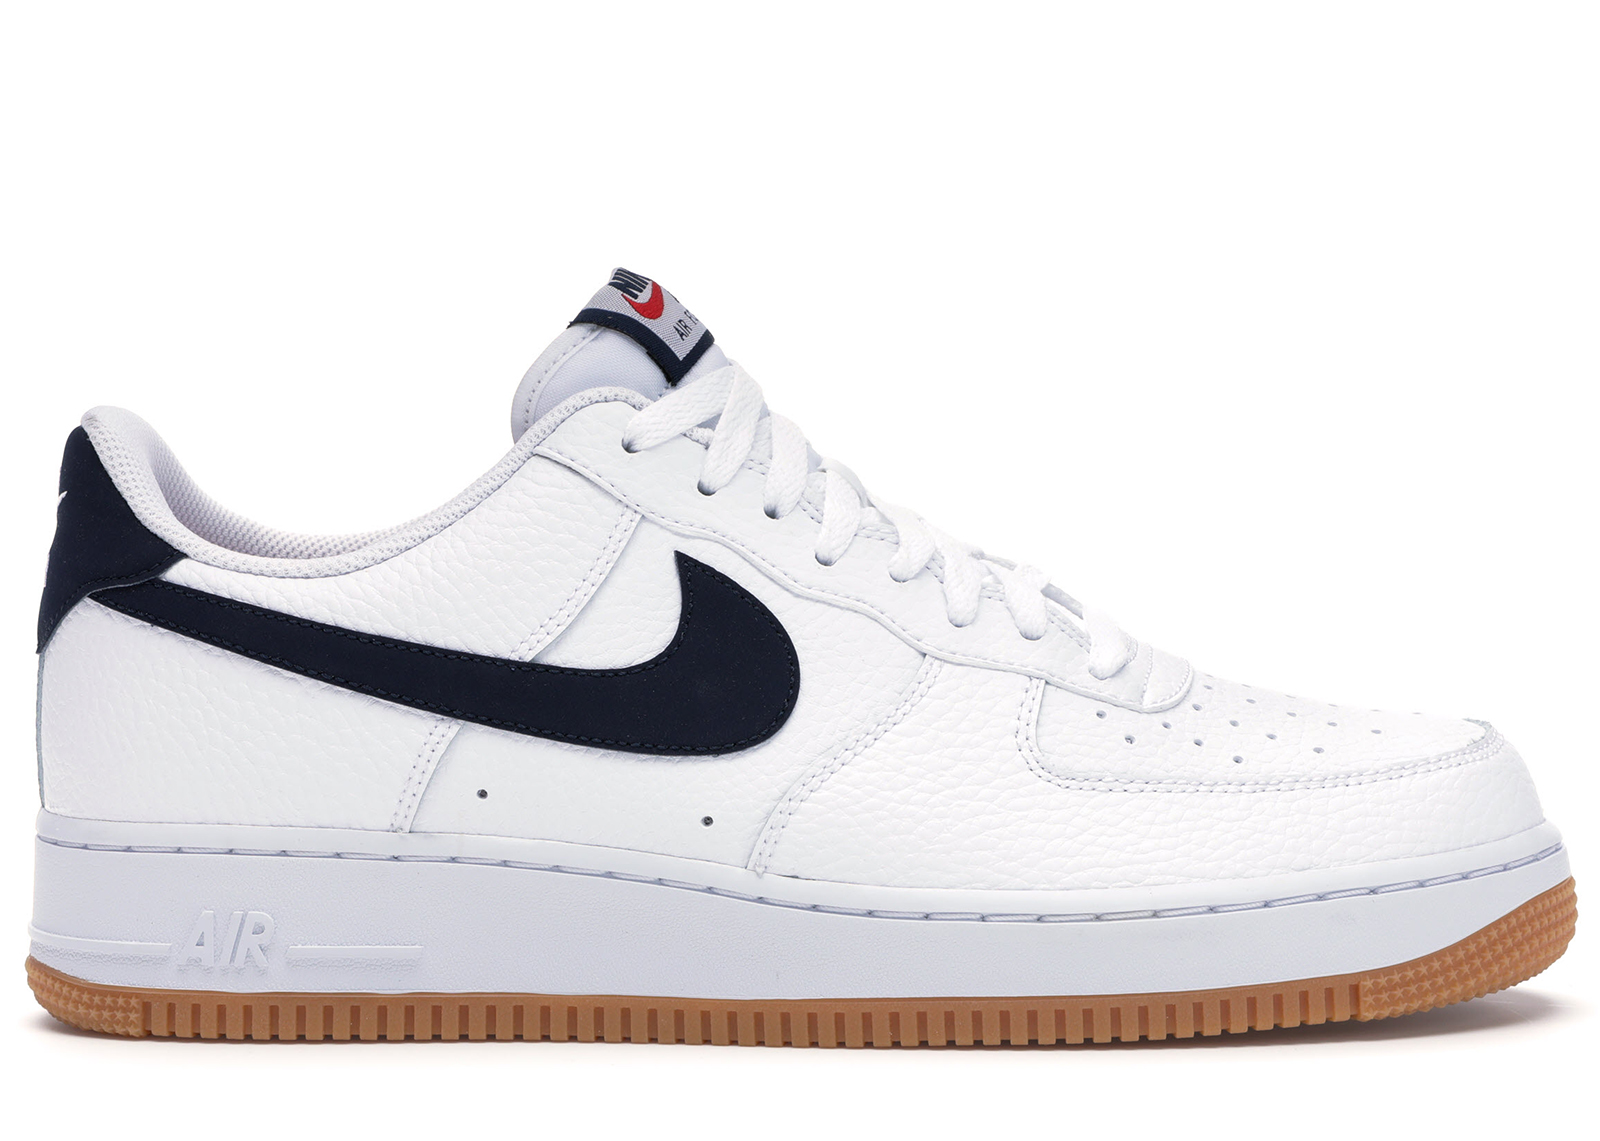 Nike Air Force 1 Low '07 White Obsidian